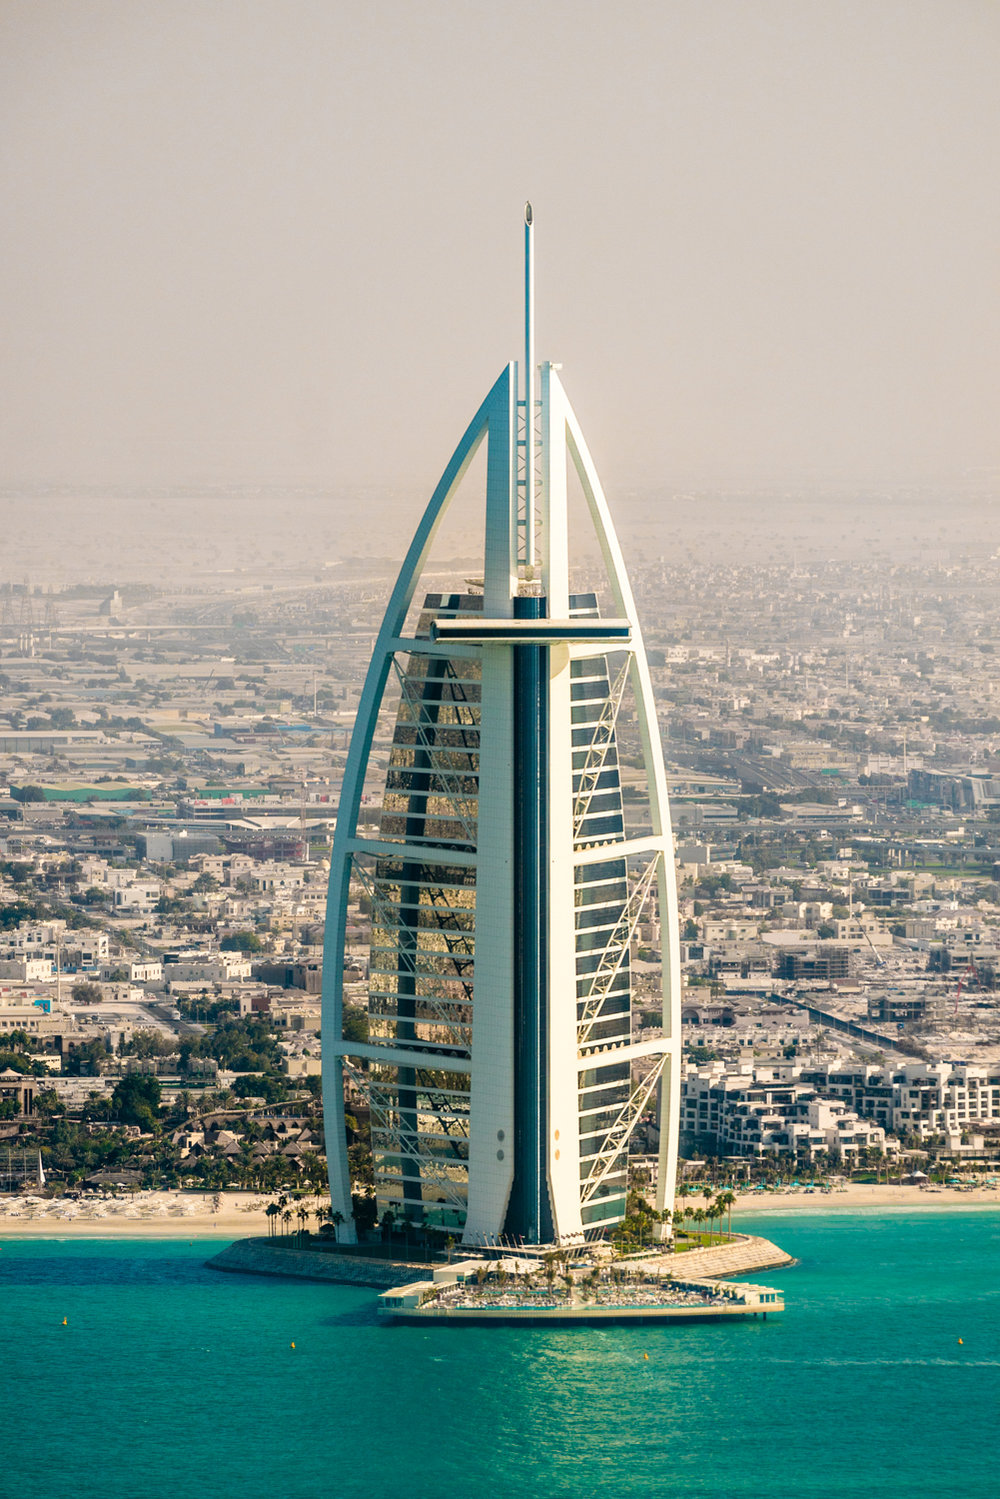 "nother candidate for ""favorite shot of the trip"".  A tight, clear view of the back of the Burj Al Arab. This was cool because this is a view you don't usually get to see since there's nothing but ocean here.  Sony A7RII, Sony 55-210mm f/4.5-6.3 (iso100, f/6.3, 1/500s)"